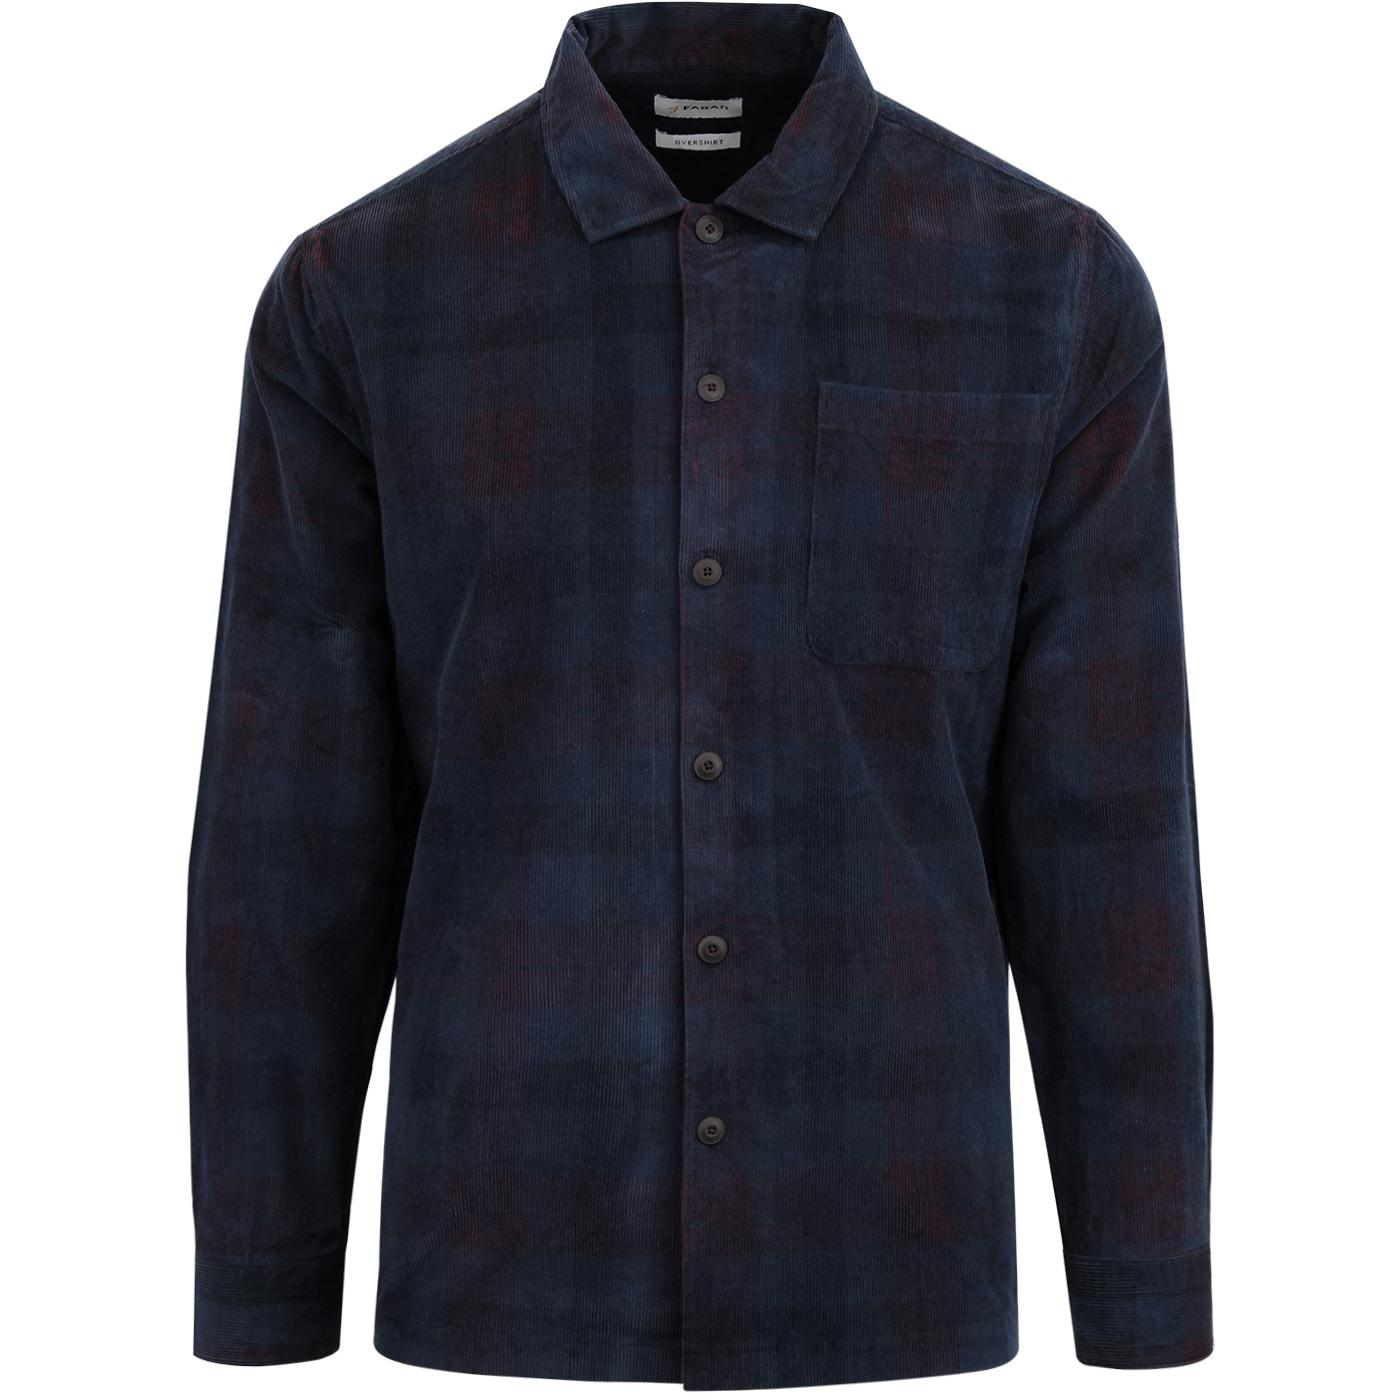 Hemmings FARAH Tartan Check Needle Cord Overshirt